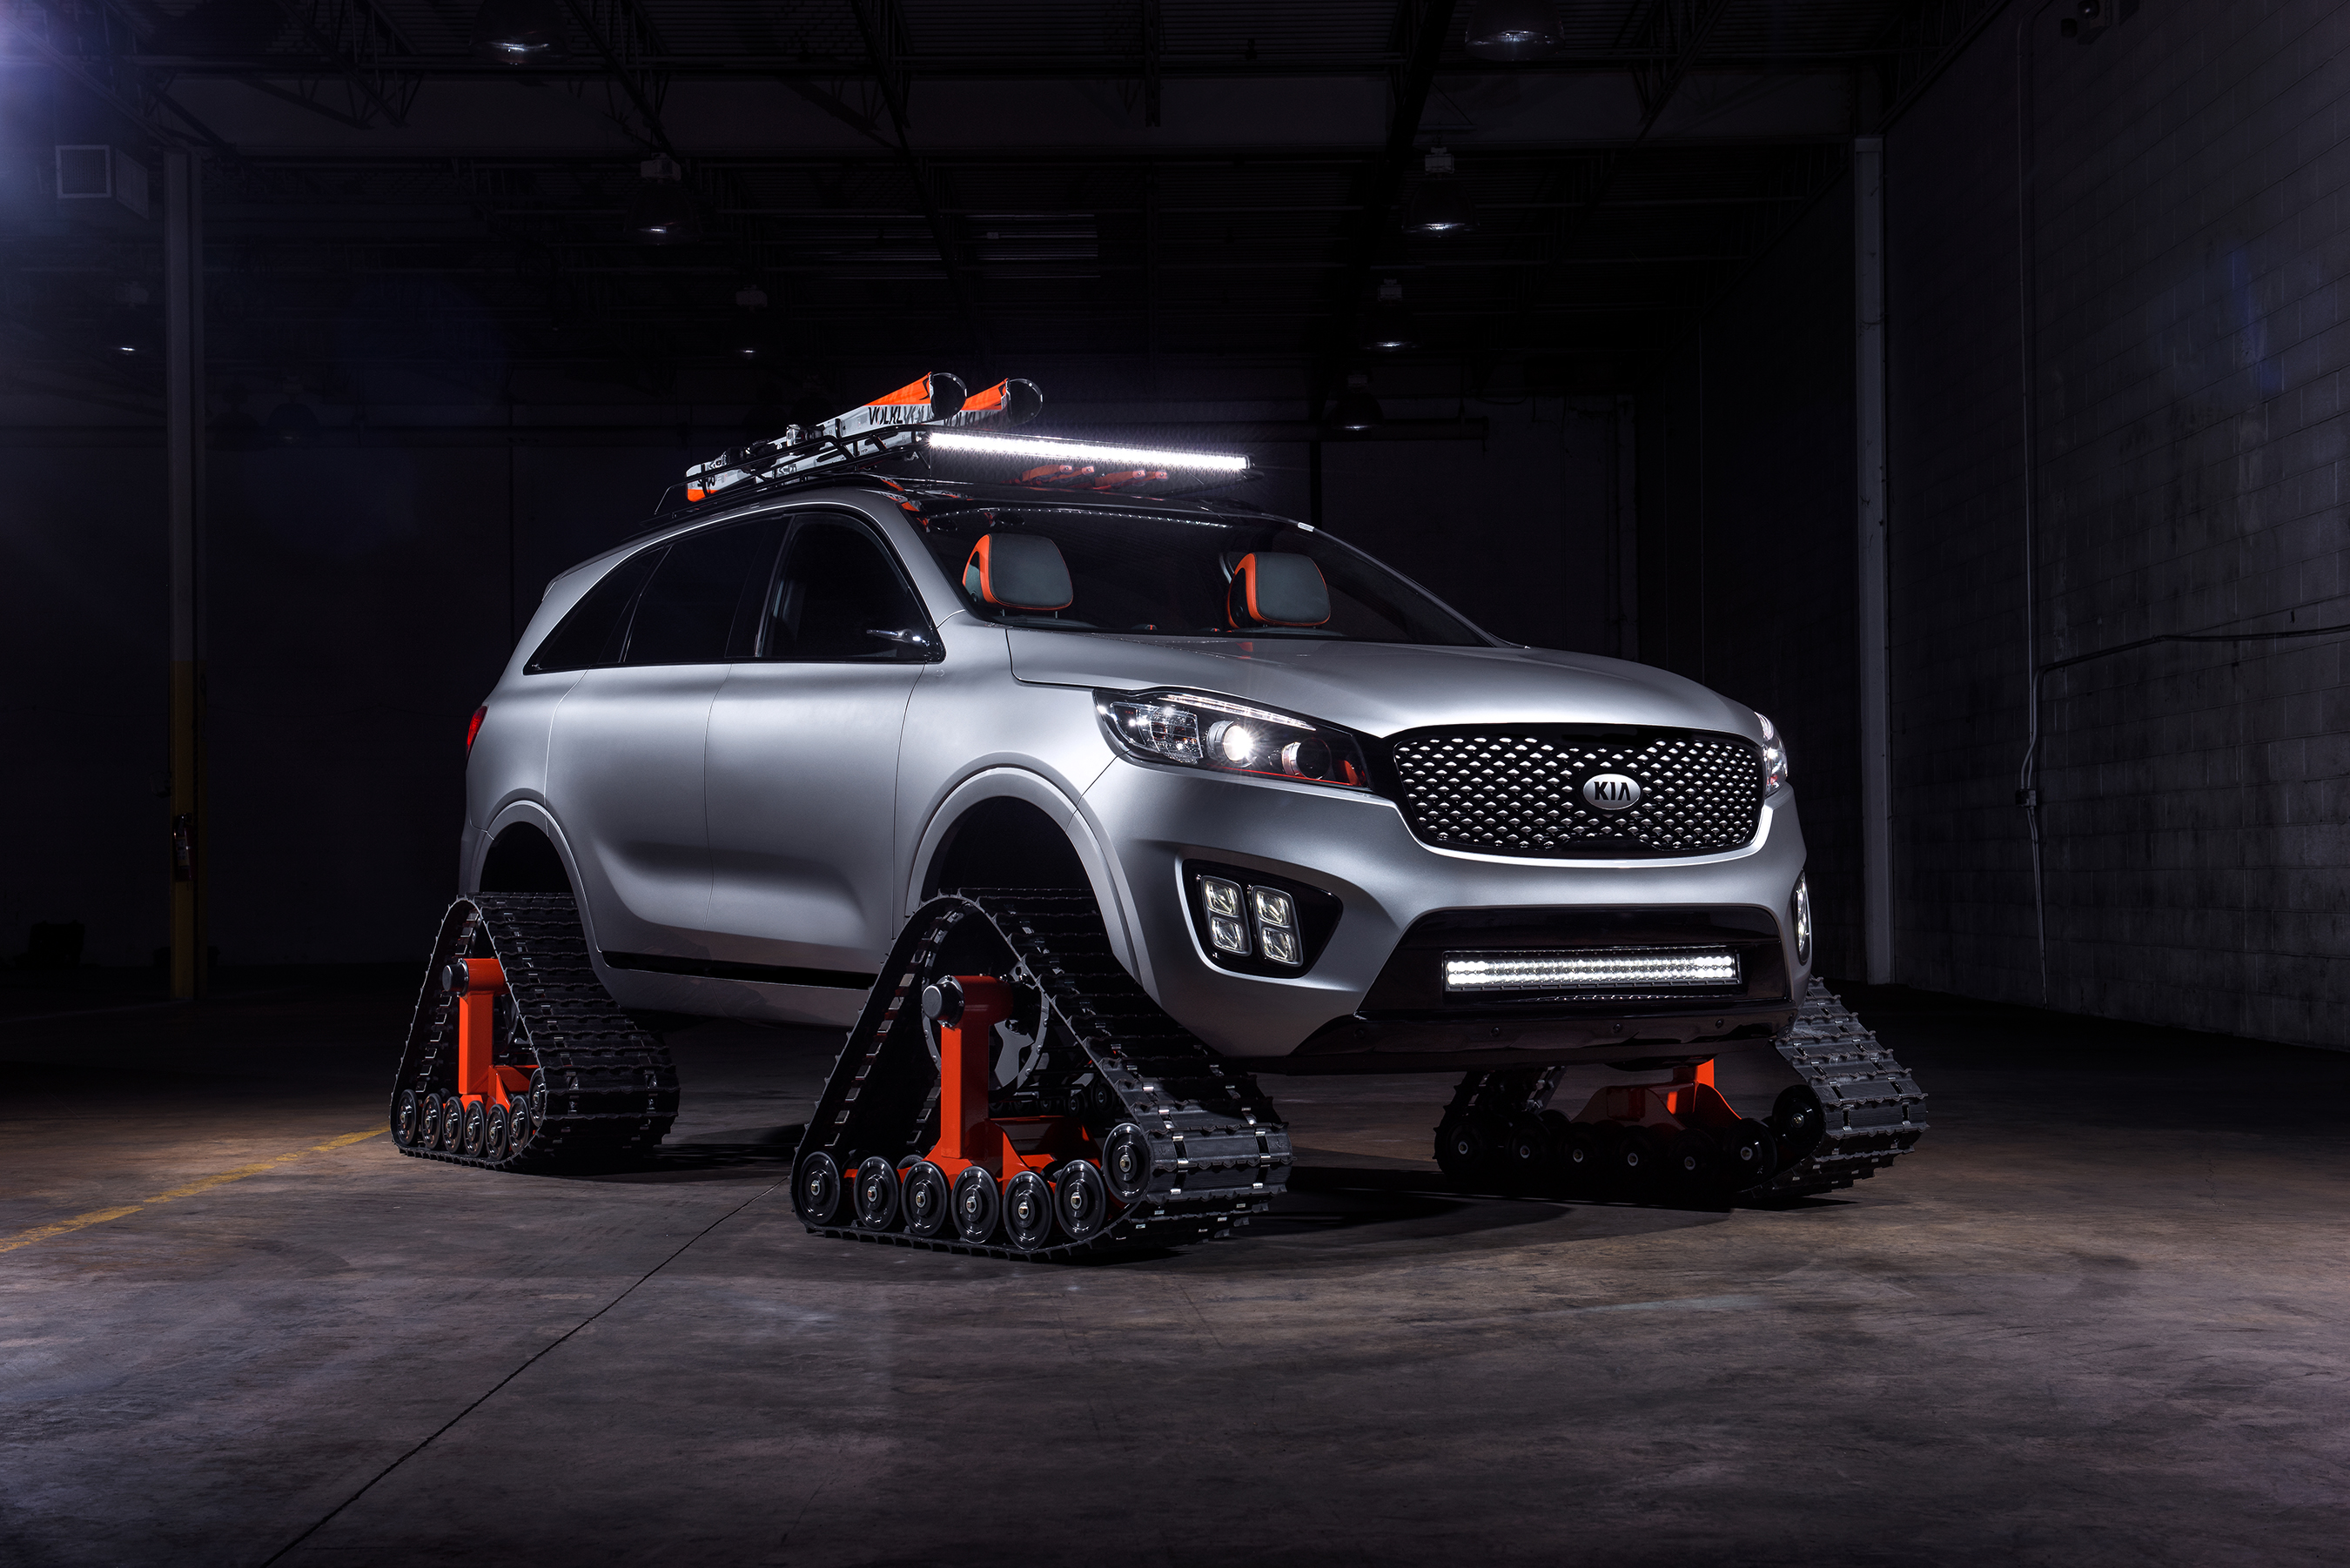 Taking the idea of a sport-utility vehicle to new heights, the luxurious and self-driving Sorento Ski Gondola is all about climbing to higher ground in style, comfort and warmth